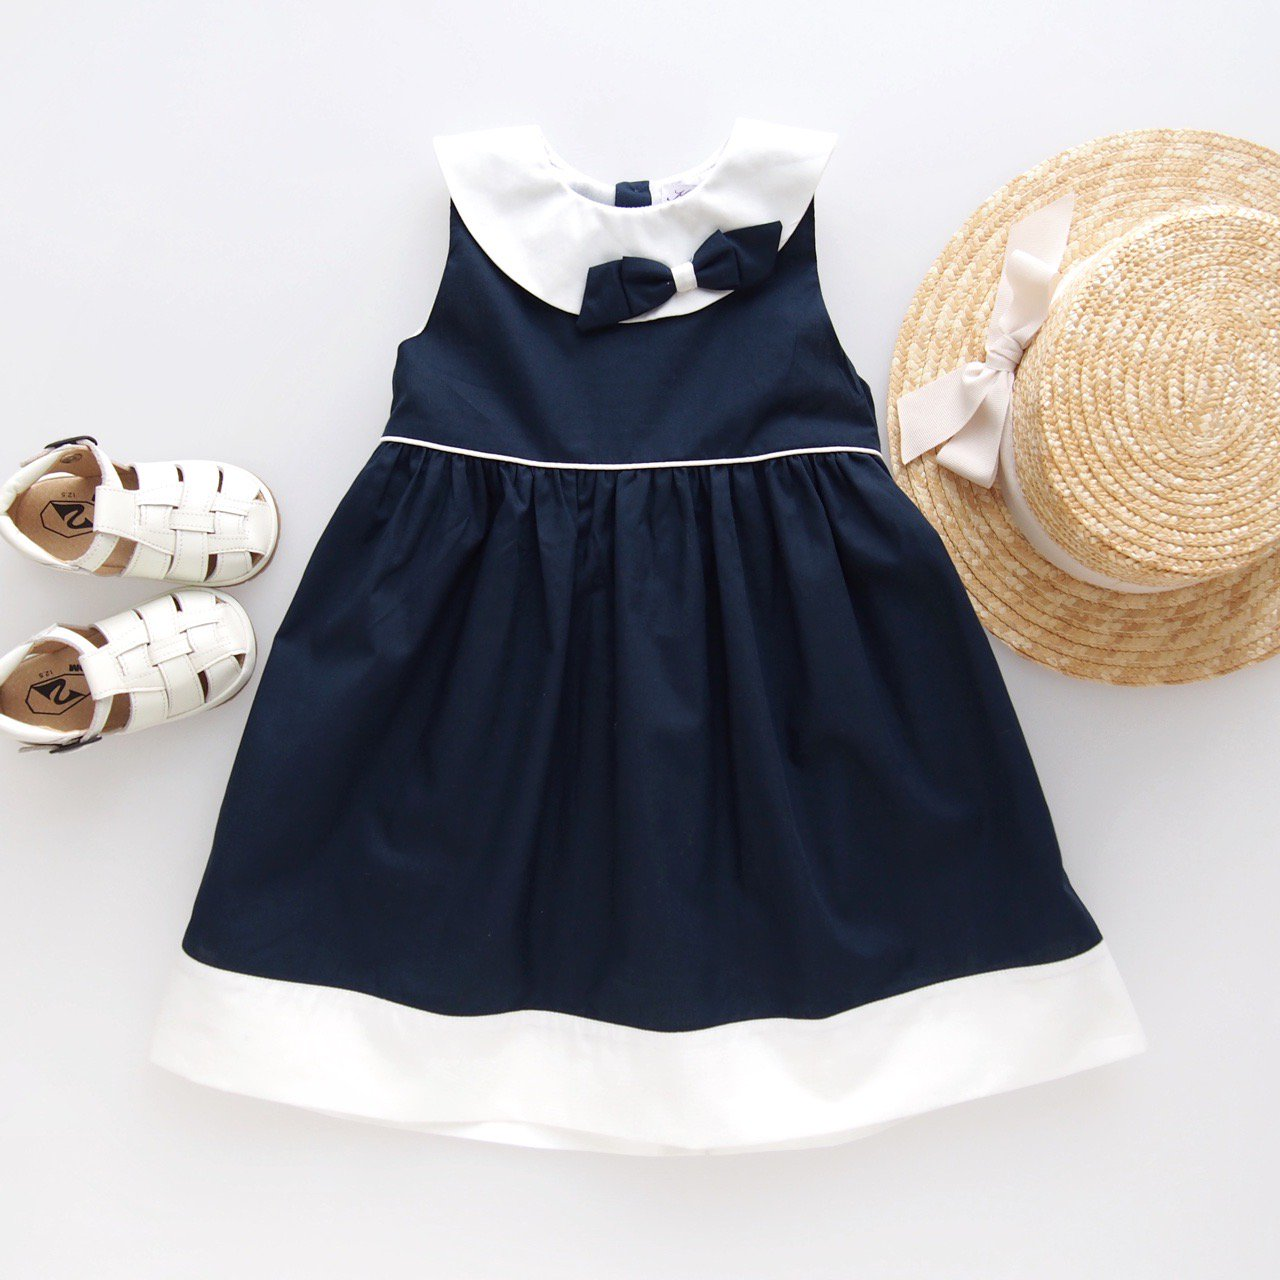 <img class='new_mark_img1' src='https://img.shop-pro.jp/img/new/icons14.gif' style='border:none;display:inline;margin:0px;padding:0px;width:auto;' />Kidiwi - ALEXIA dress (Navy)